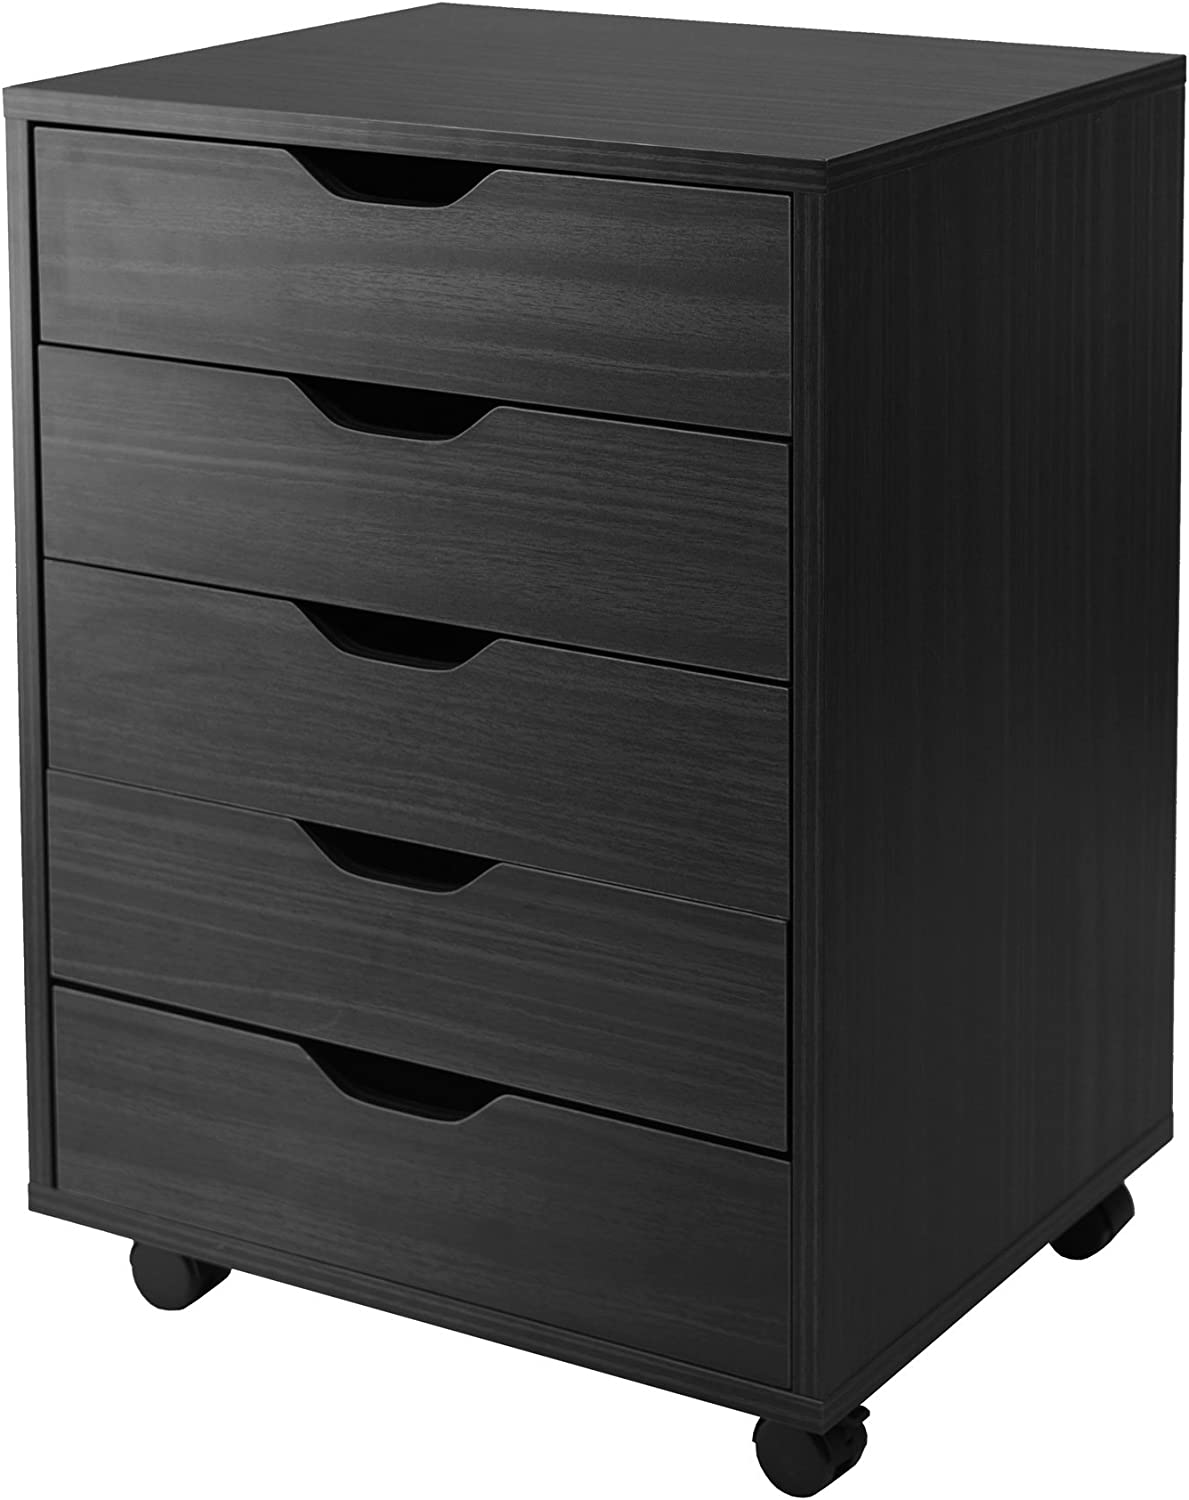 Winsome Wood Halifax Cabinet for Closet Office, 5 Drawers, Black